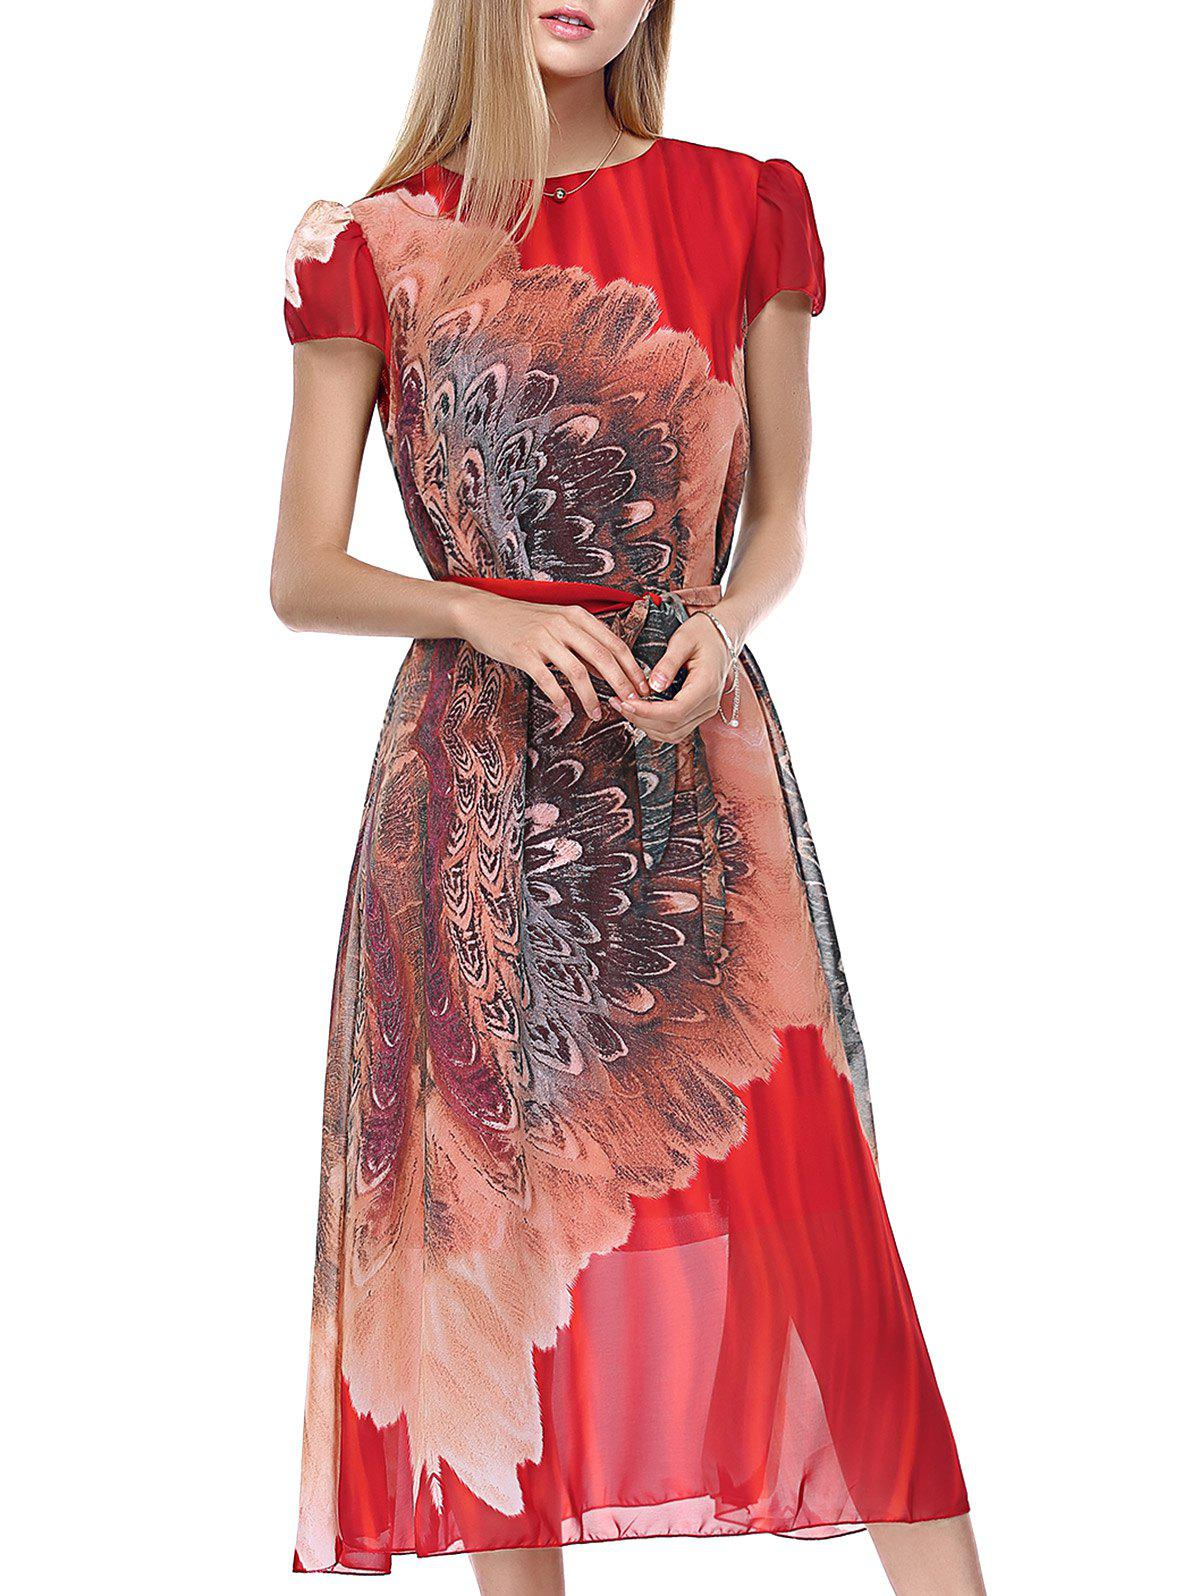 Bohemian Floral Pattern Cap Sleeve Women's Chiffon Dress - RED ONE SIZE(FIT SIZE XS TO M)